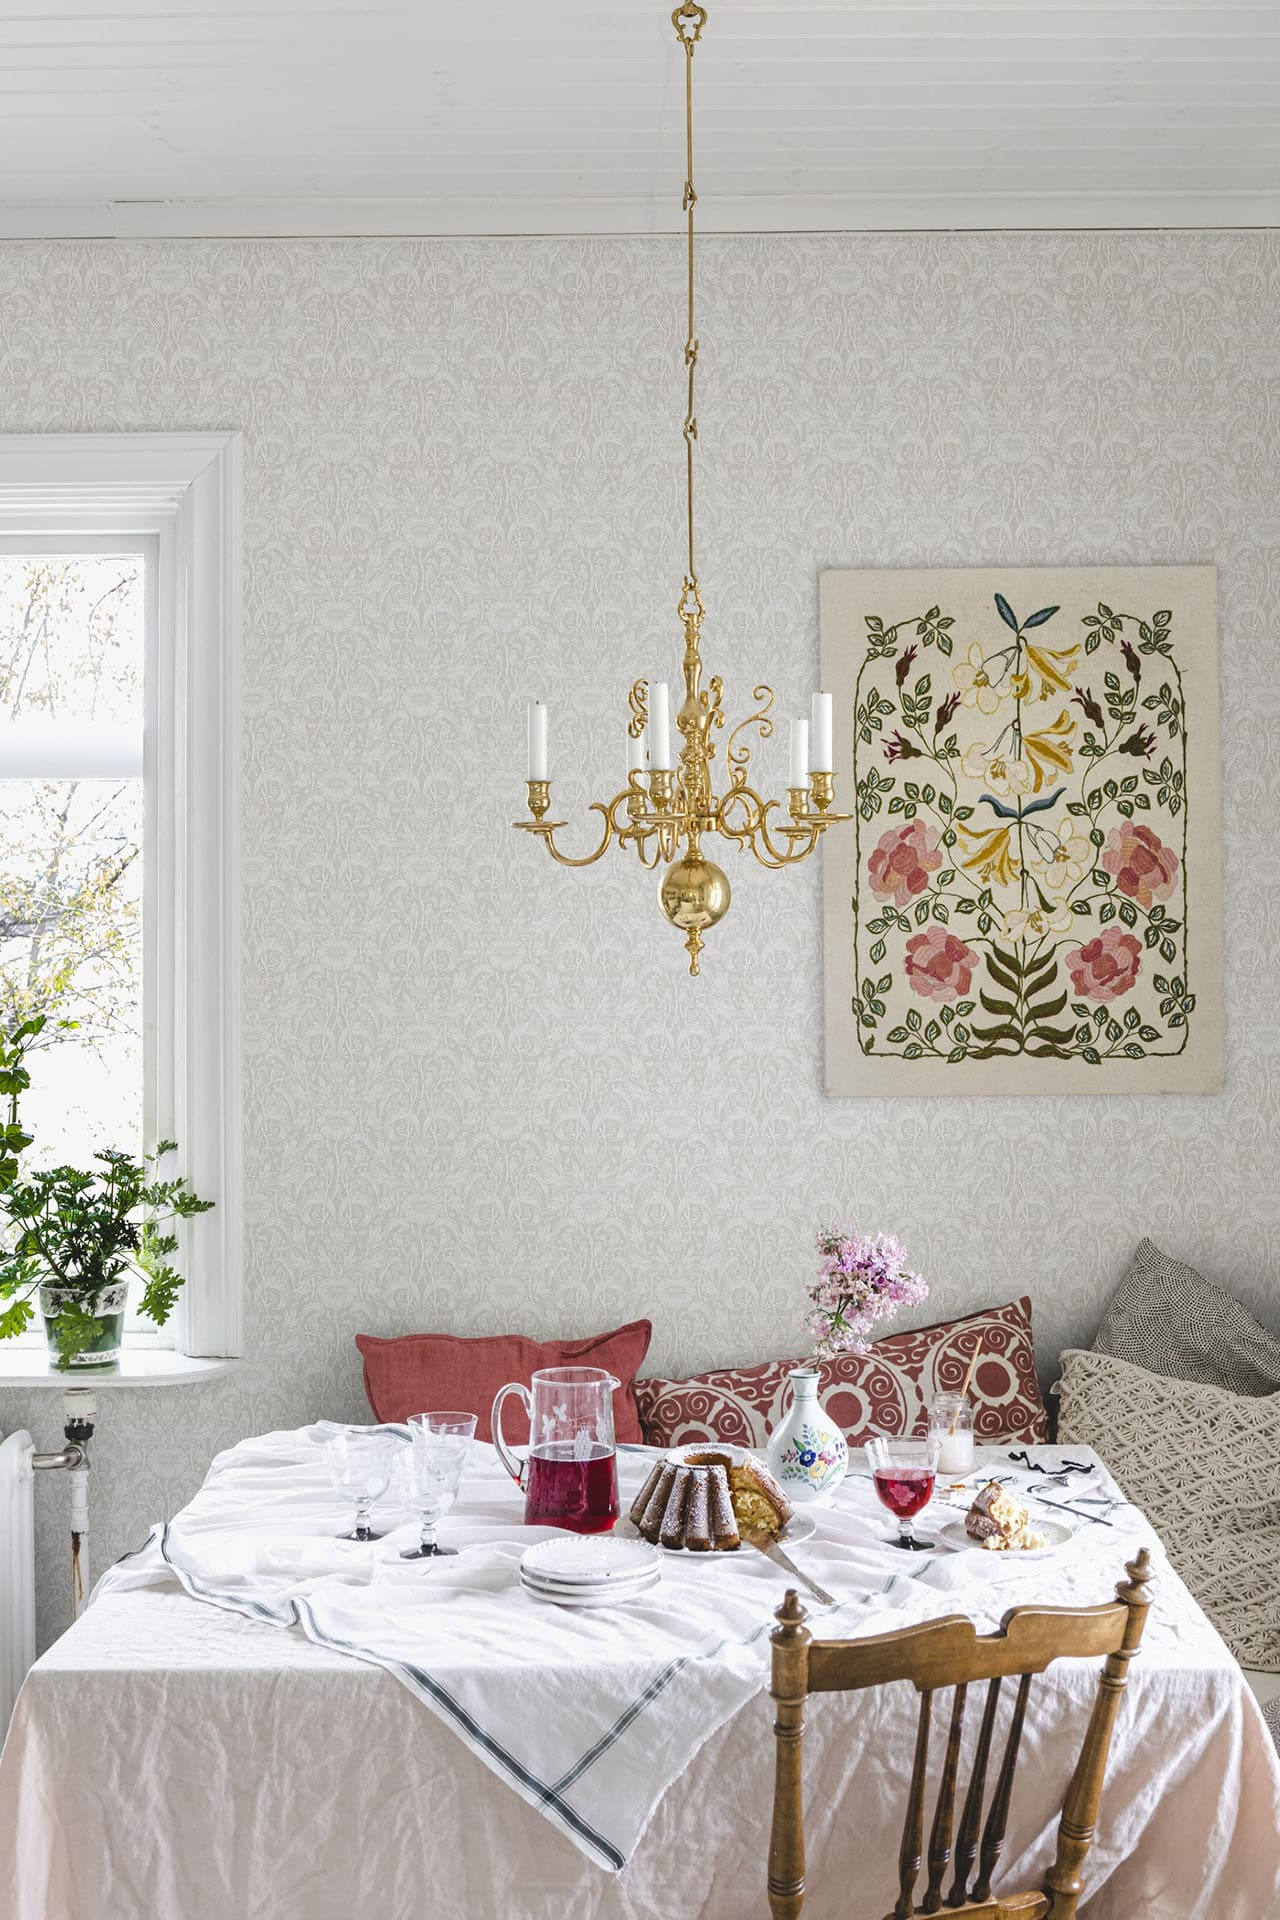 this is a dining room with light floral motif wallpaper inspired by shabby chic